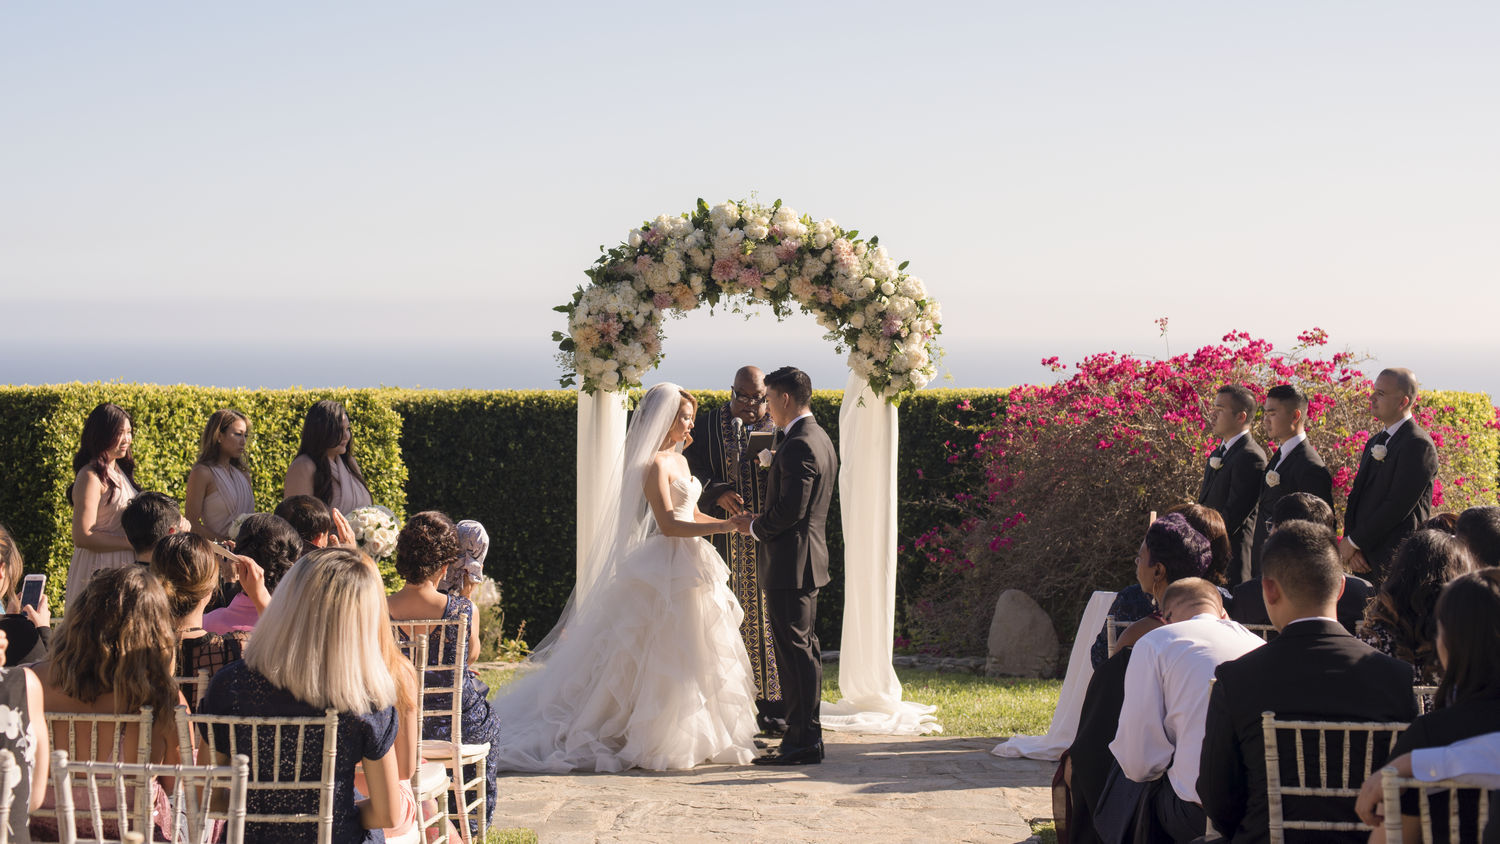 wedding-stone-manor-estates-malibu-angela-samuel-155.jpg